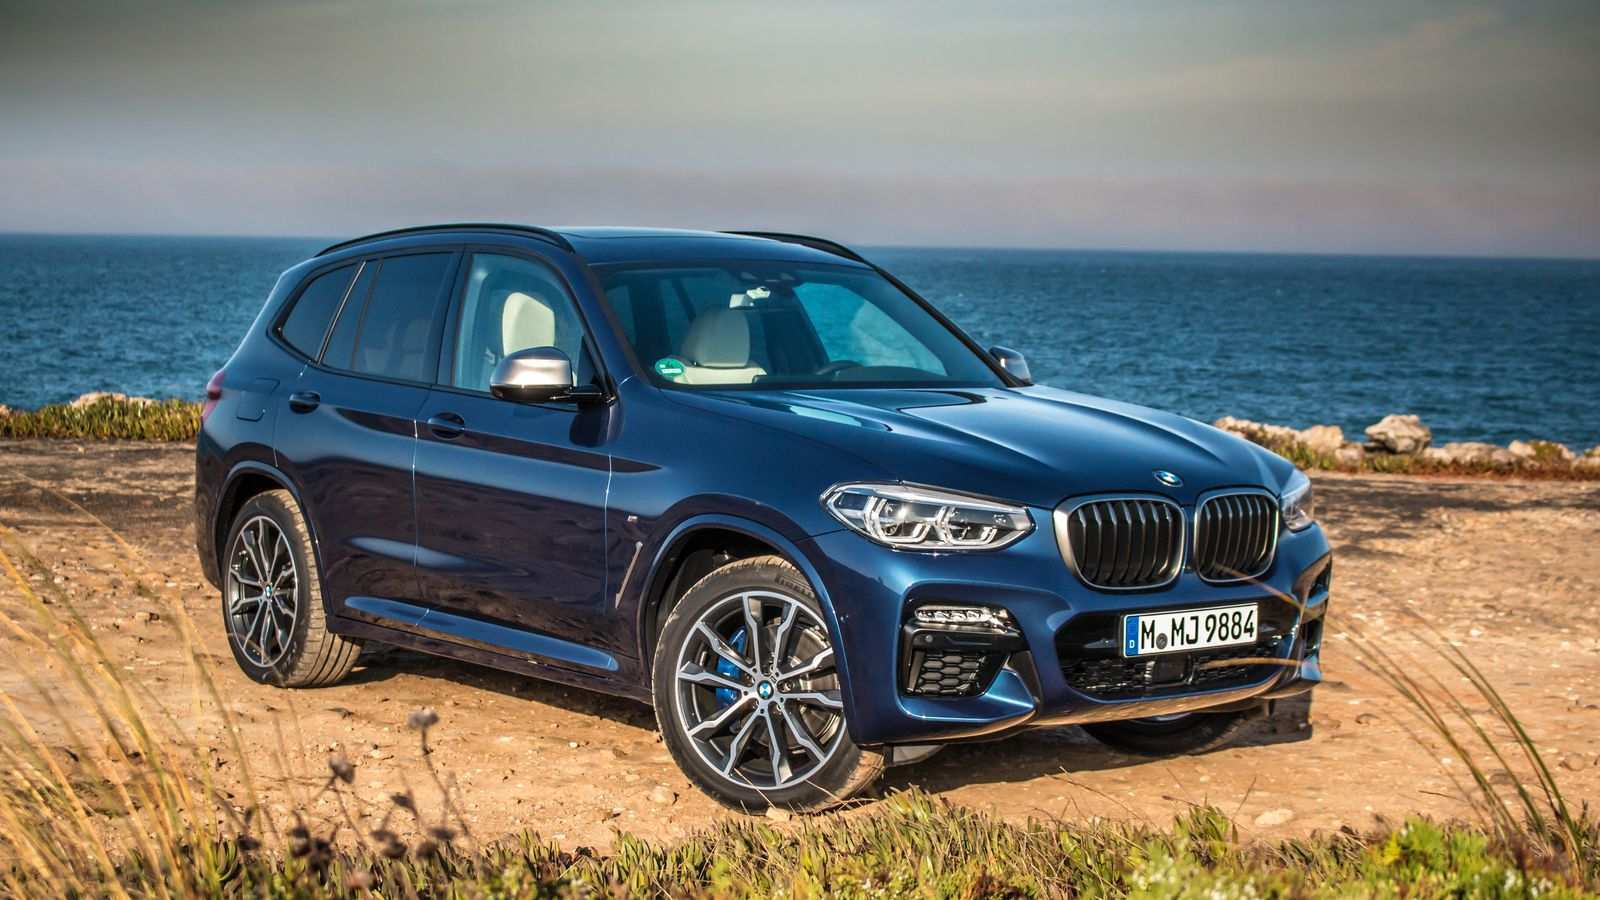 55 Gallery of 2020 BMW Truck Lineup Style with 2020 BMW Truck Lineup